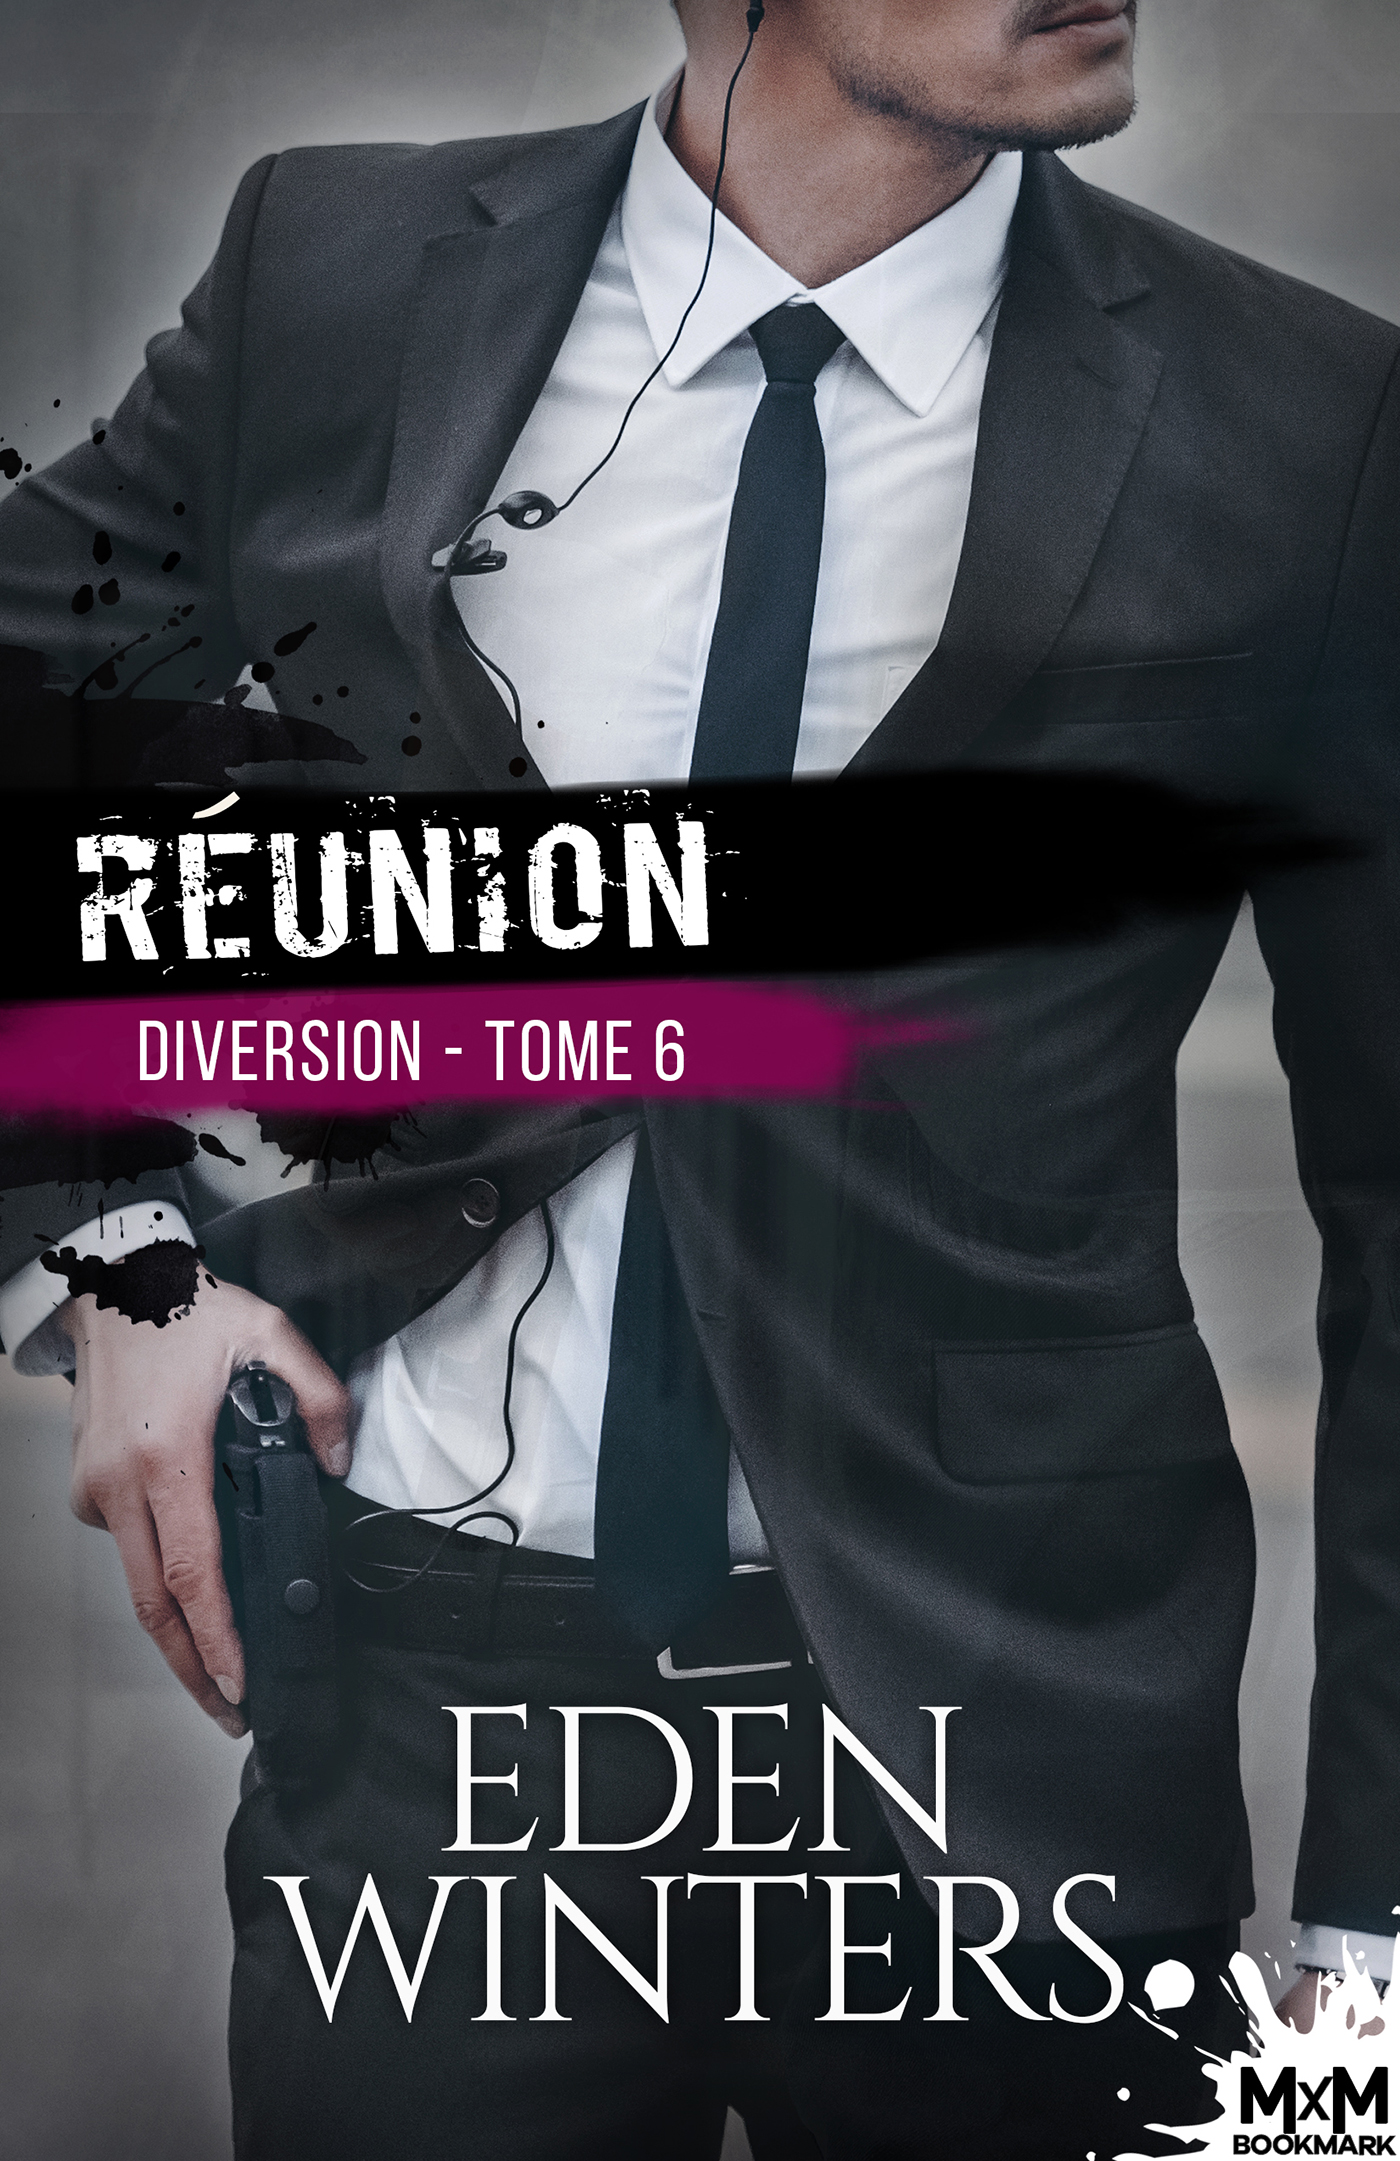 Diversion - Tome 6 : Réunion de Eden Winters Diversion-tome-6-reunion-1159808